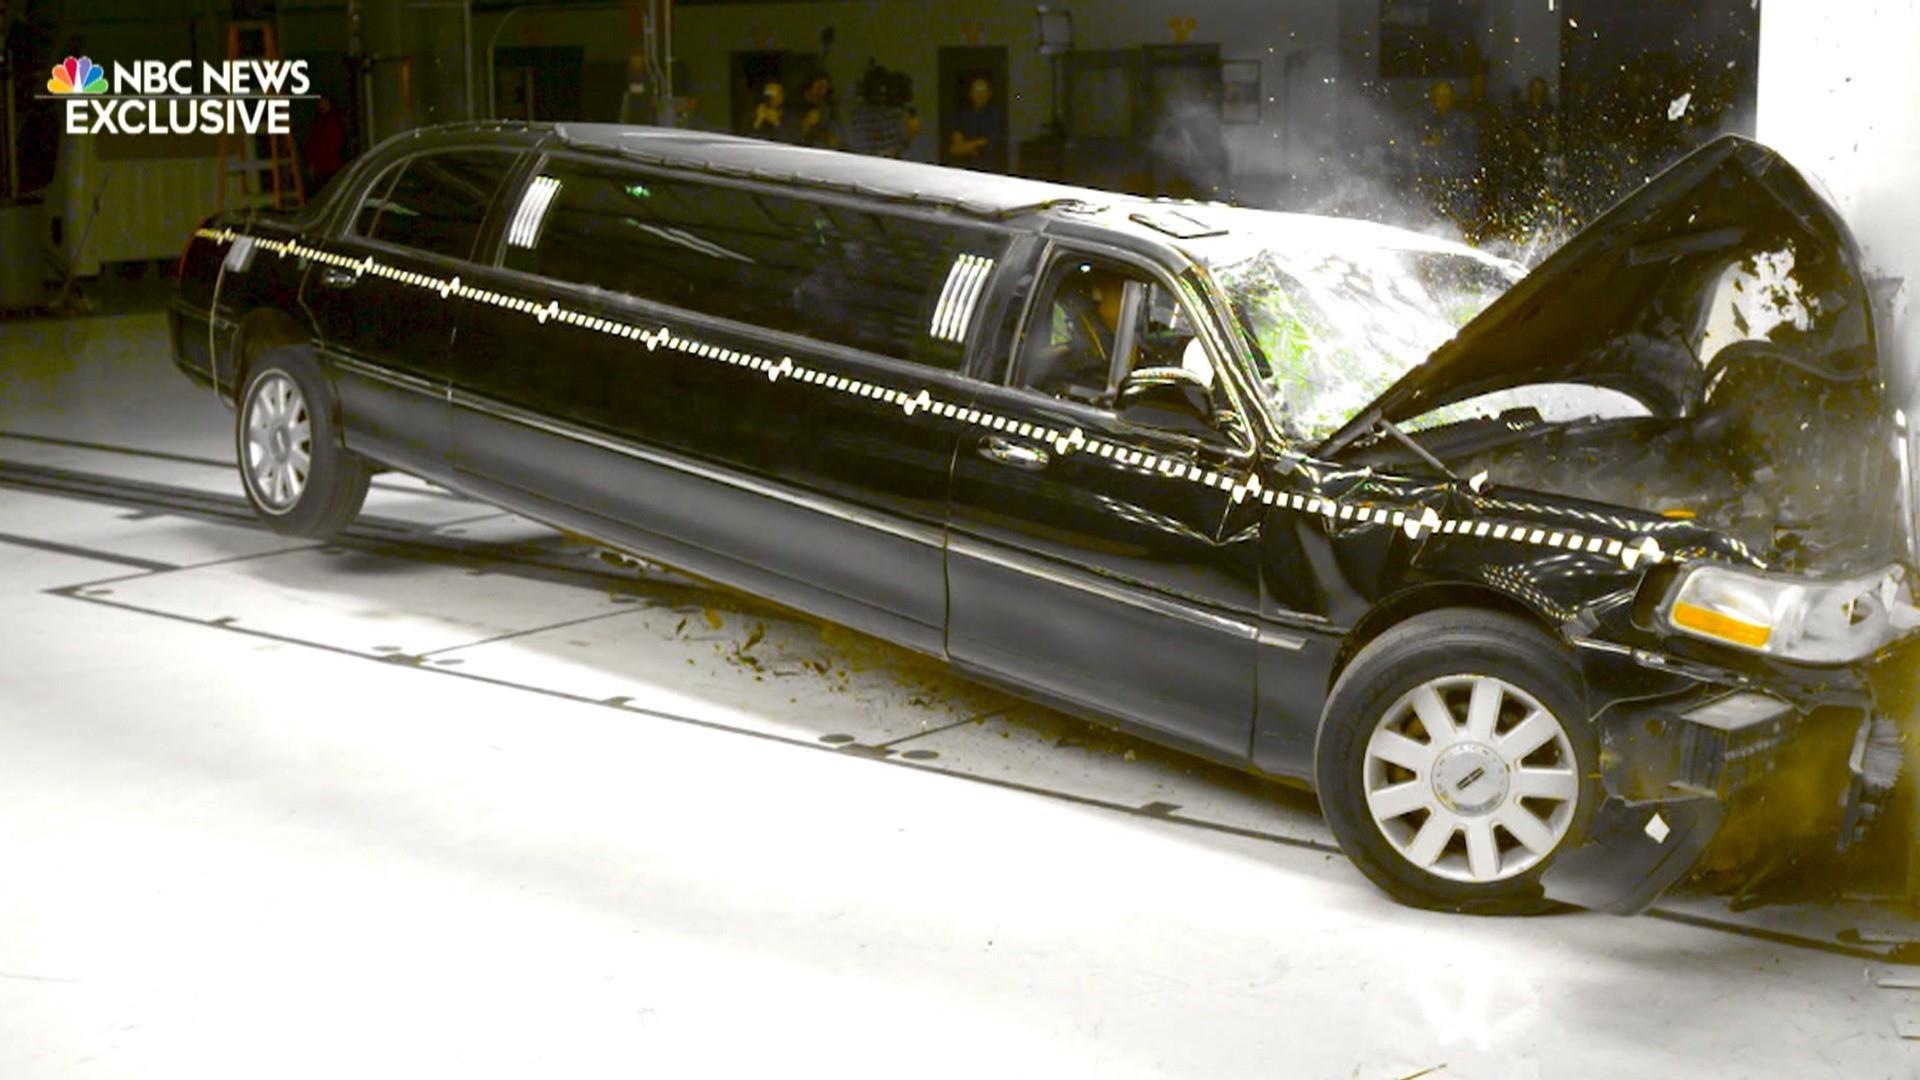 Are stretch limos safe? Watch this crash-test footage of a startling crash